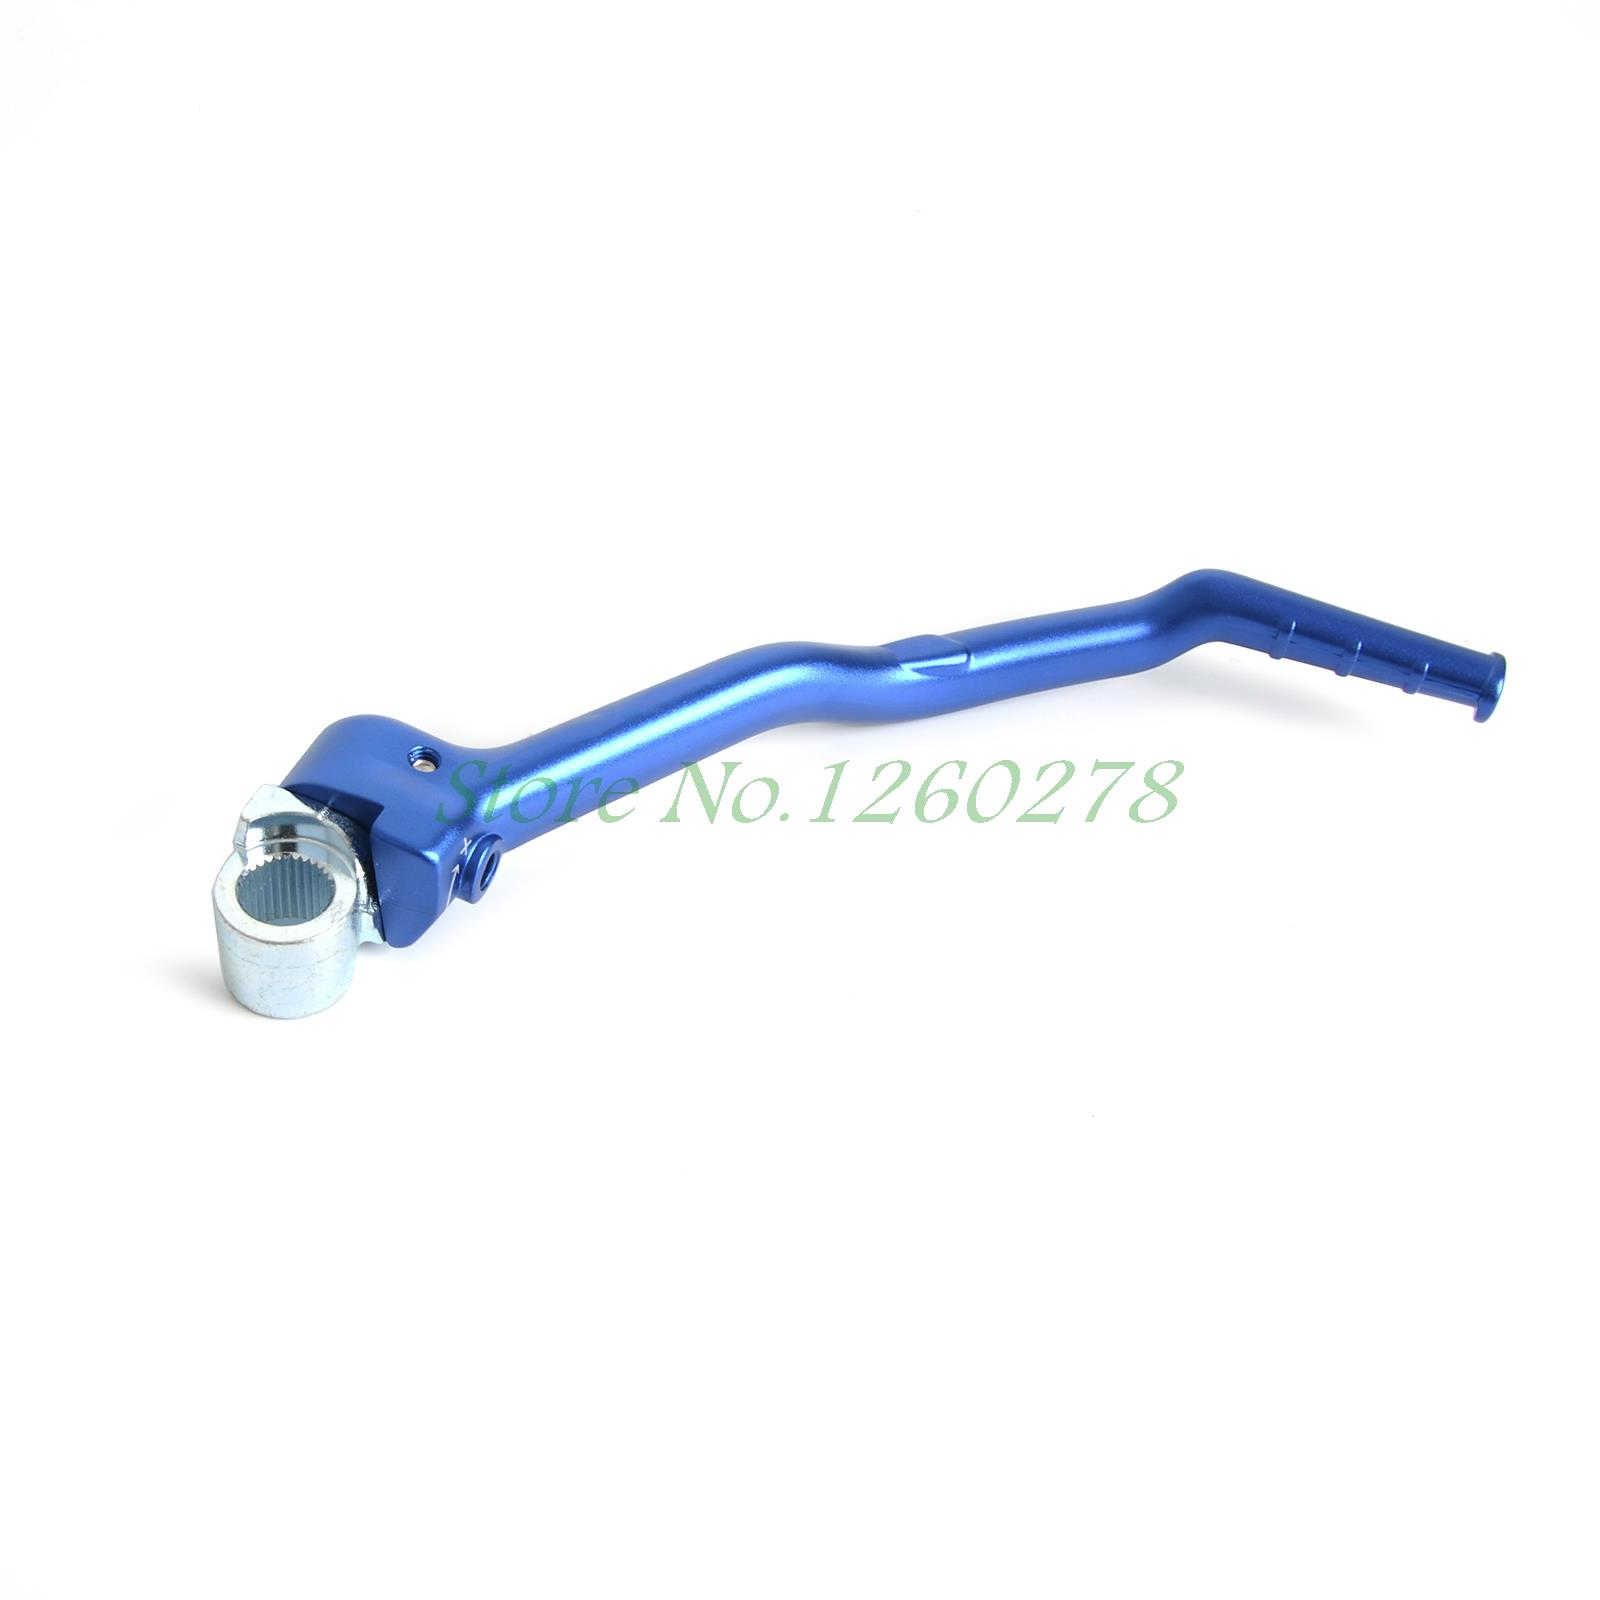 Motorcycle Forged Kick Start Lever Starter Fit For Yamaha YZ250F YZF 250 2010-2016 YZ250FX WR250F 2015 2016 keoghs motorcycle scooter kick starter start lever cnc for yamaha scooter 100cc jog100 force100 rsz100 dio50 jog50 jog90